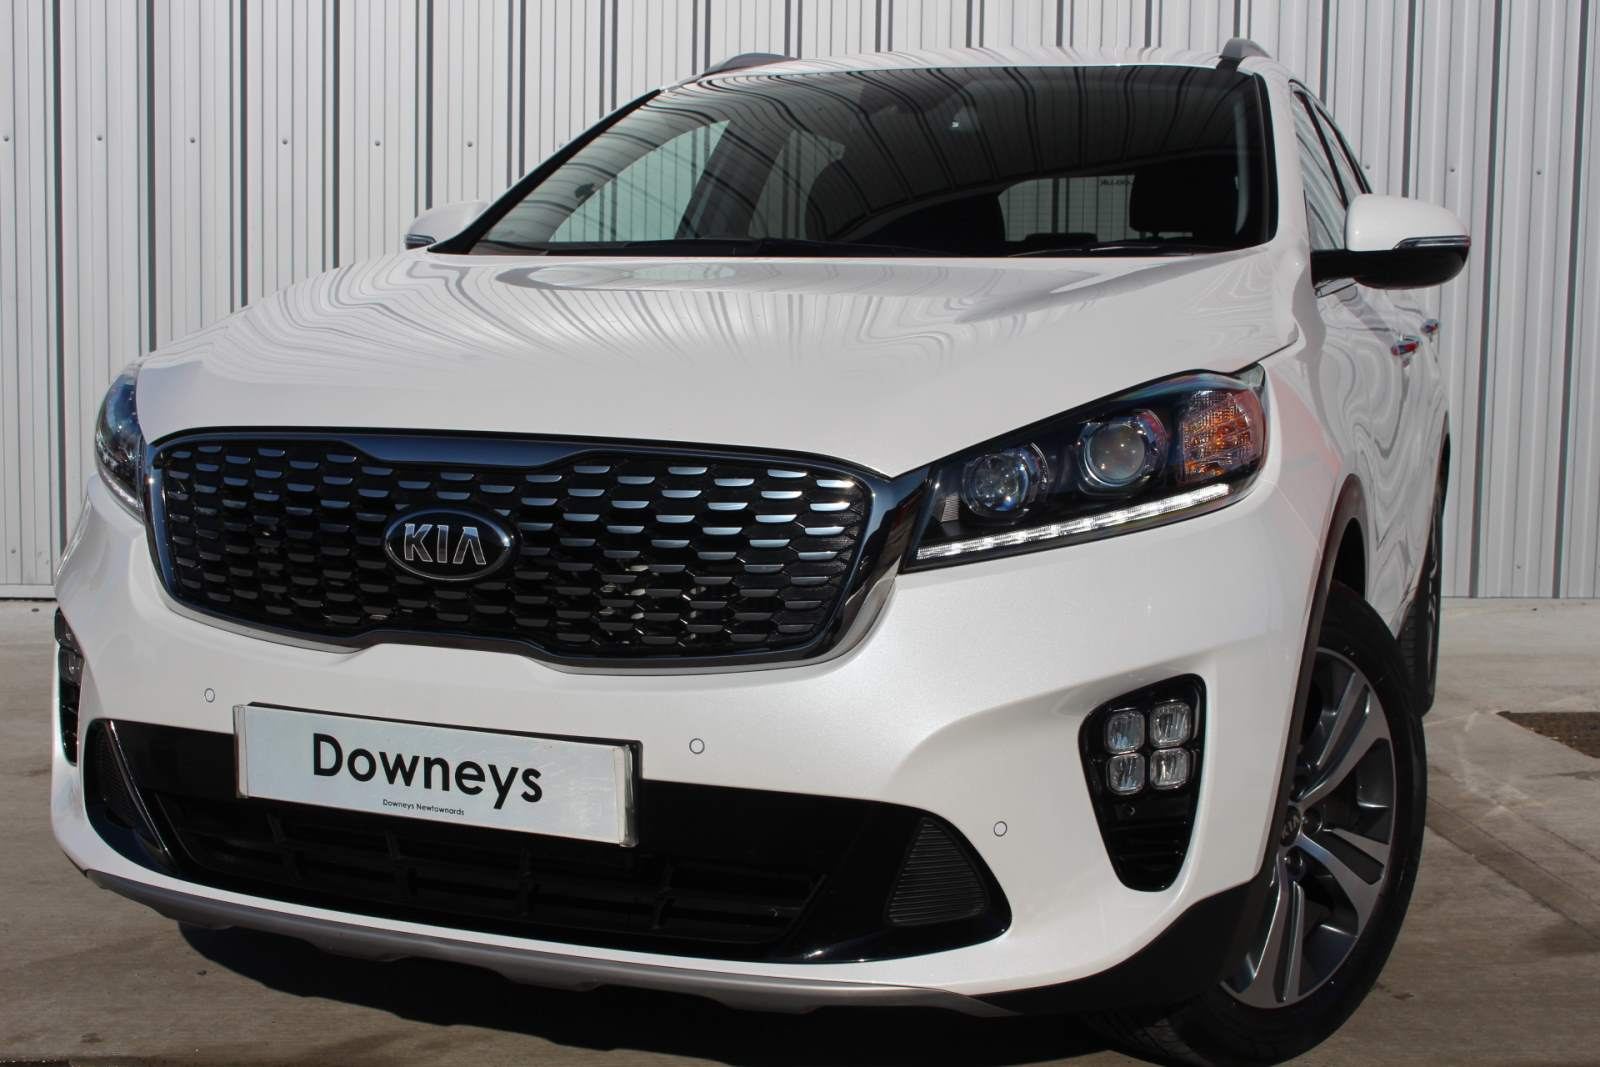 Kia SORENTO 2.2 GT-LINE CRDI ISG 4X4 AUTO 7 SEATER FULL KIA WARRANTY UNTIL FEB 2026